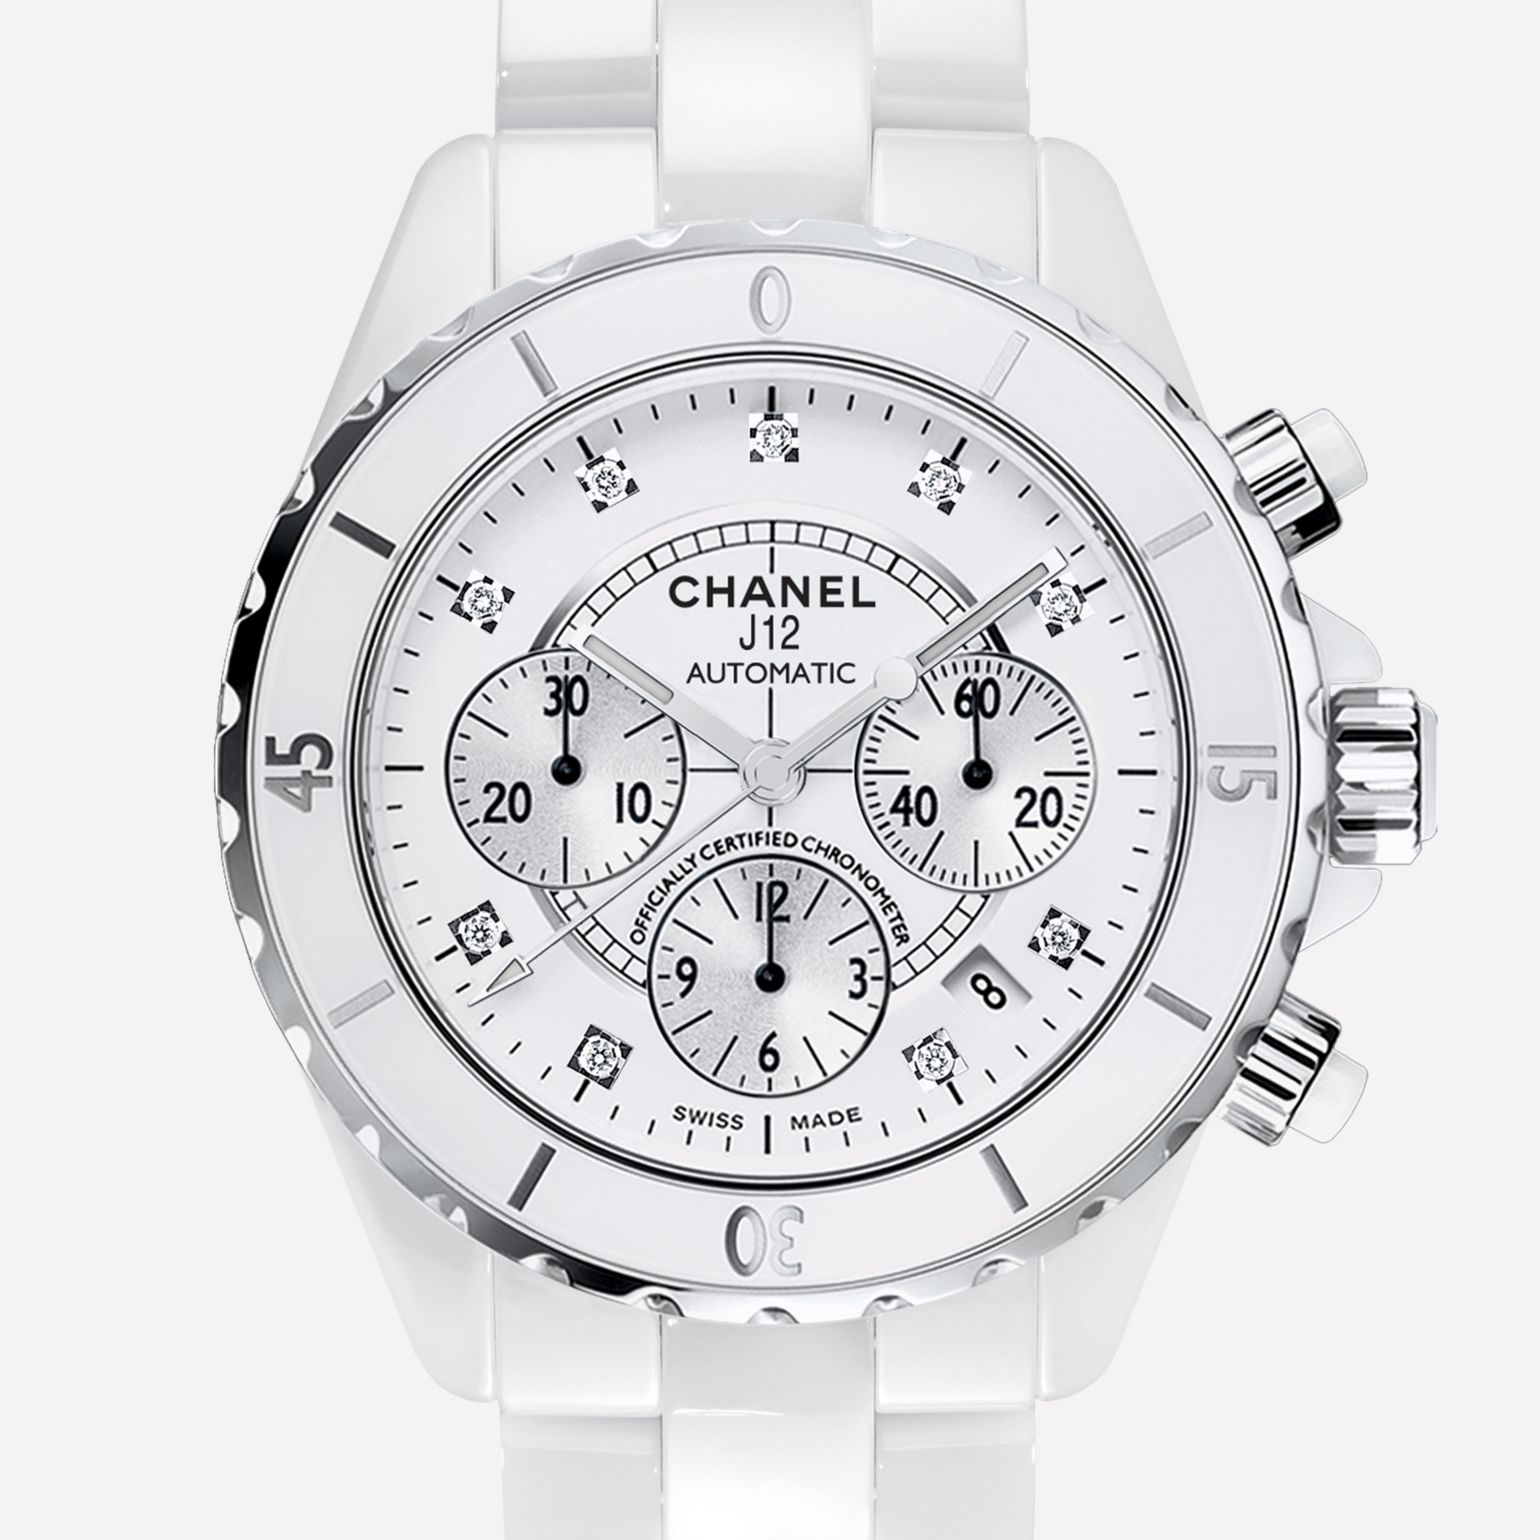 J12 Chronograph Watch White highly-resistant ceramic and steel, diamond indicators